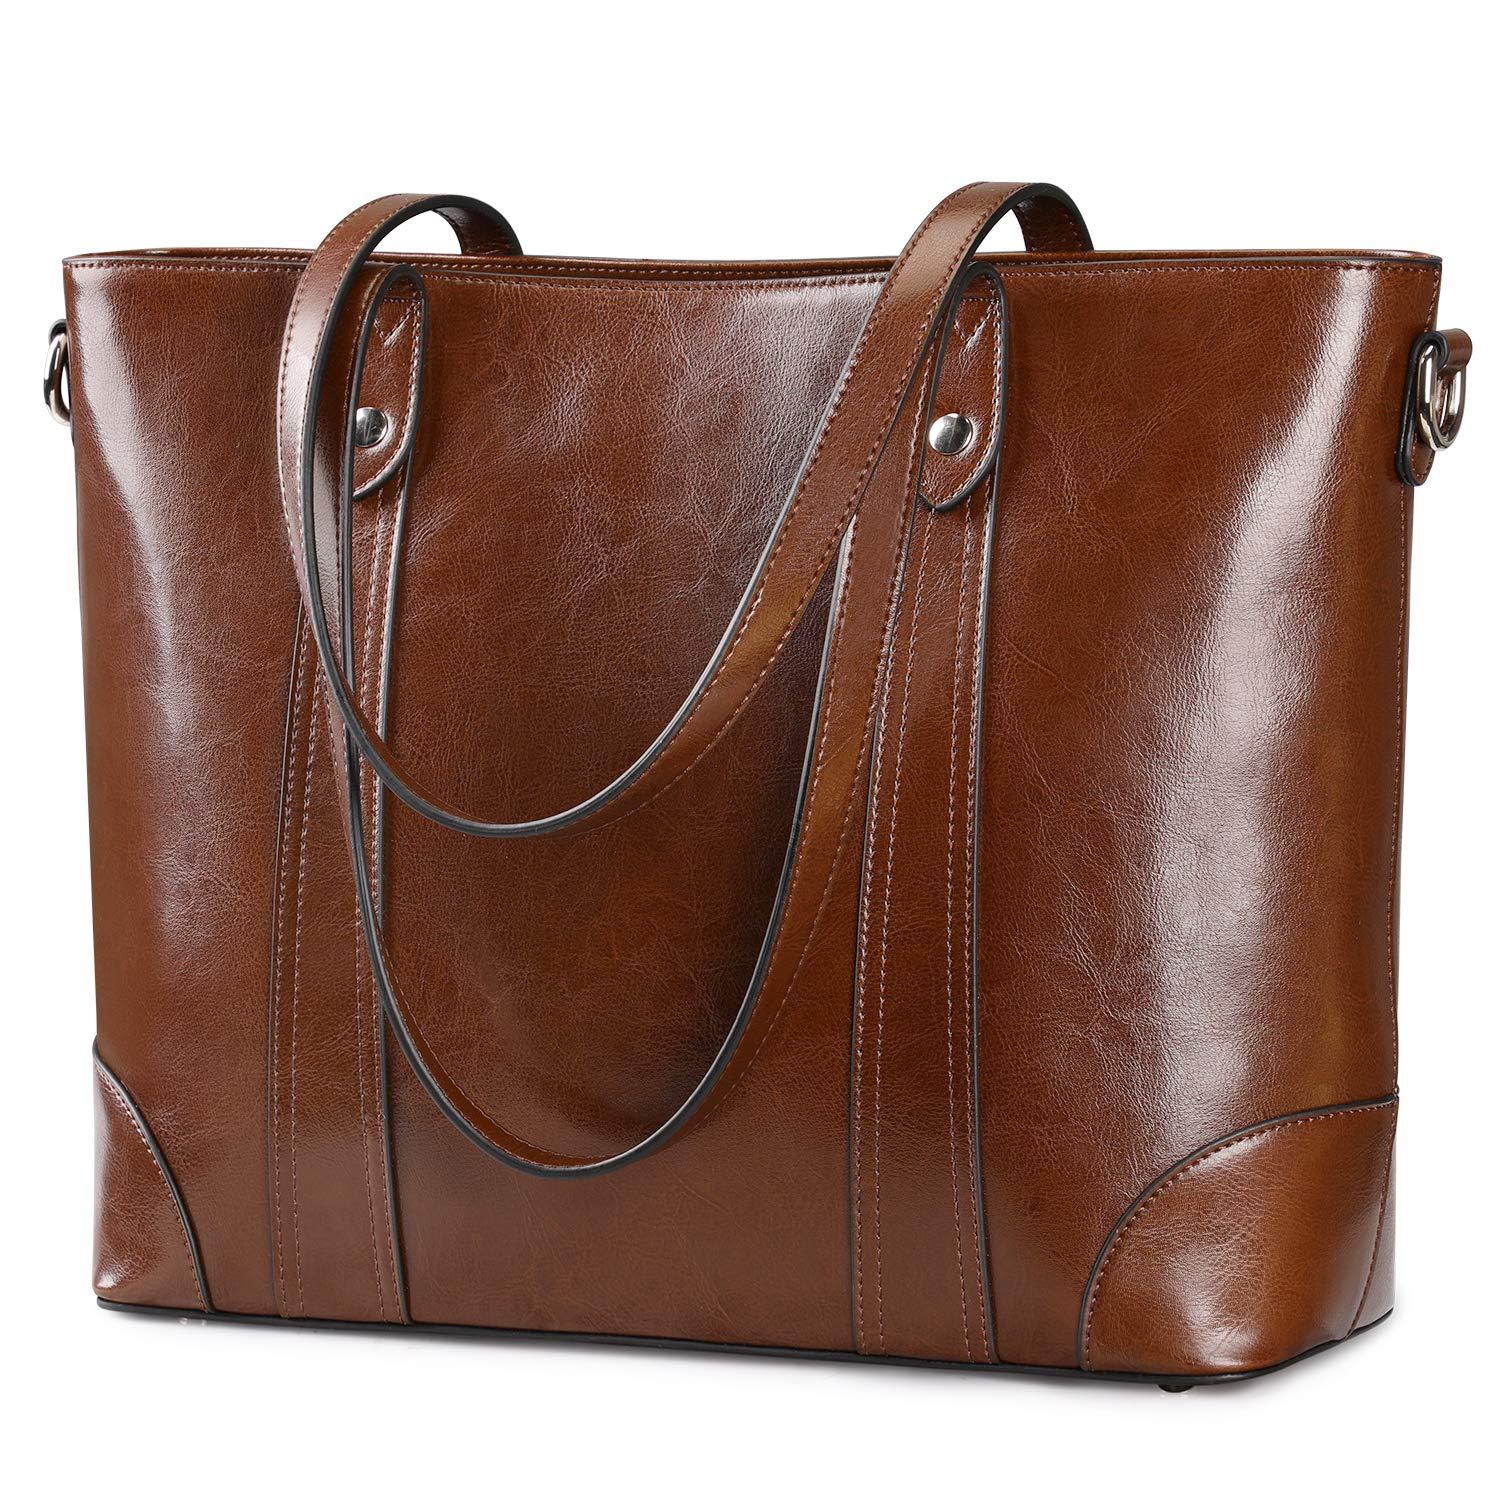 S-ZONE 15.6 Inch Leather Laptop Bag for Women Shoulder Handbag Large Work Tote by S-ZONE